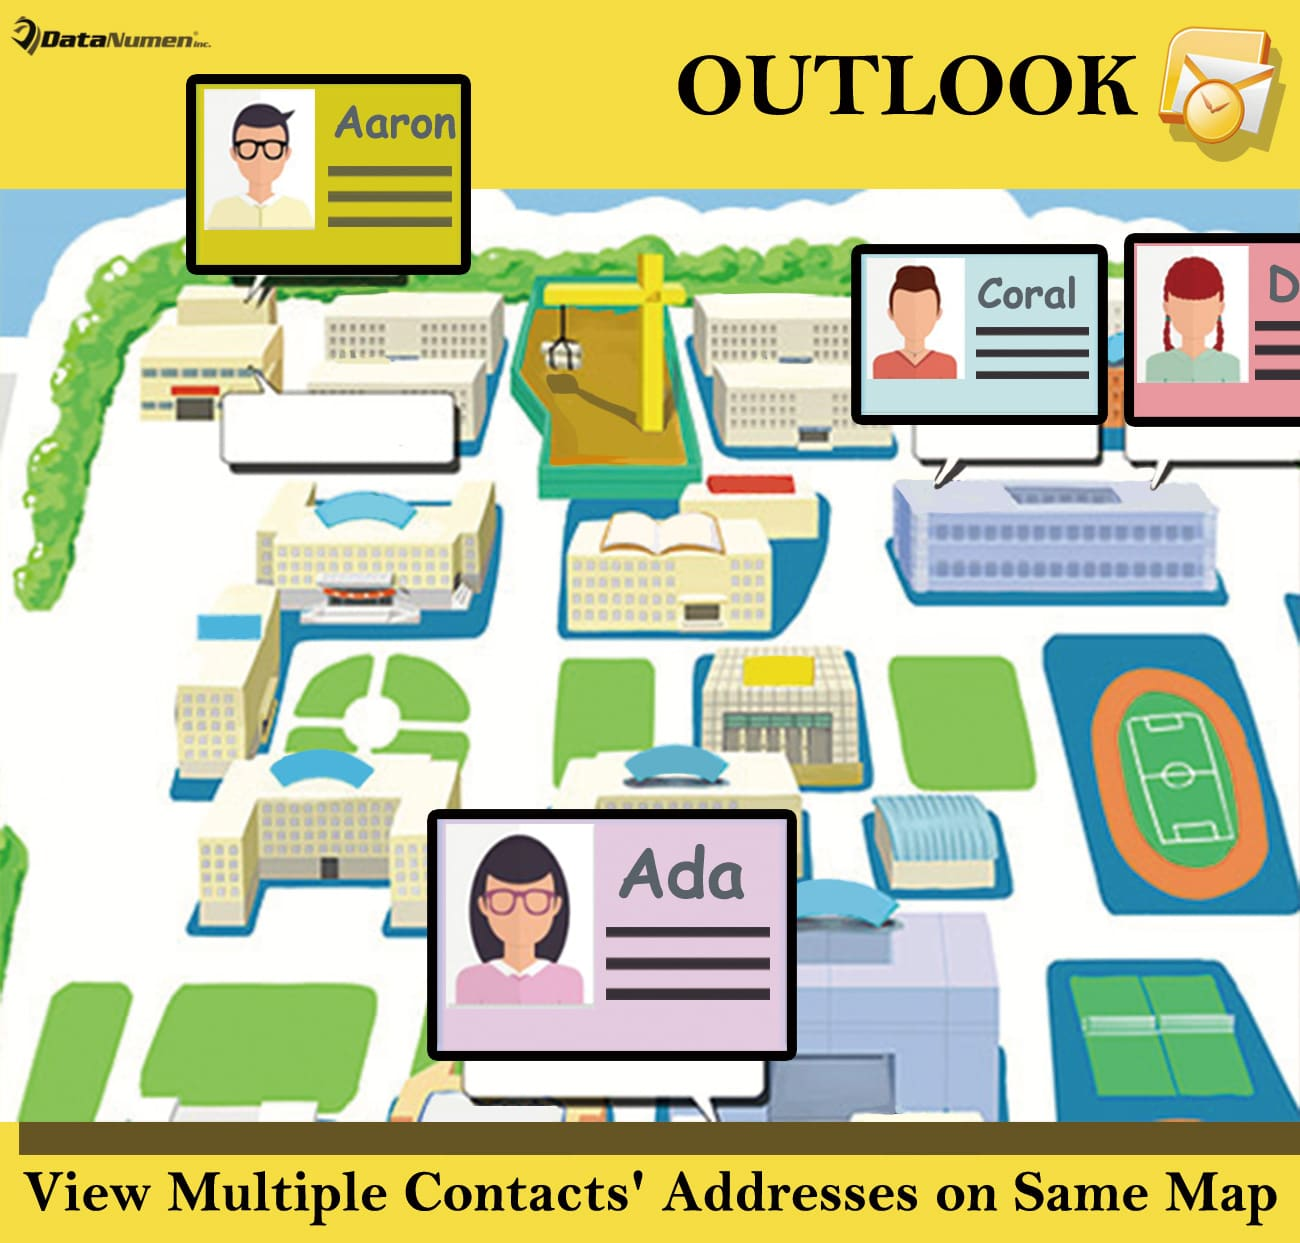 How to Quickly View Multiple Contacts' Addresses on the Same